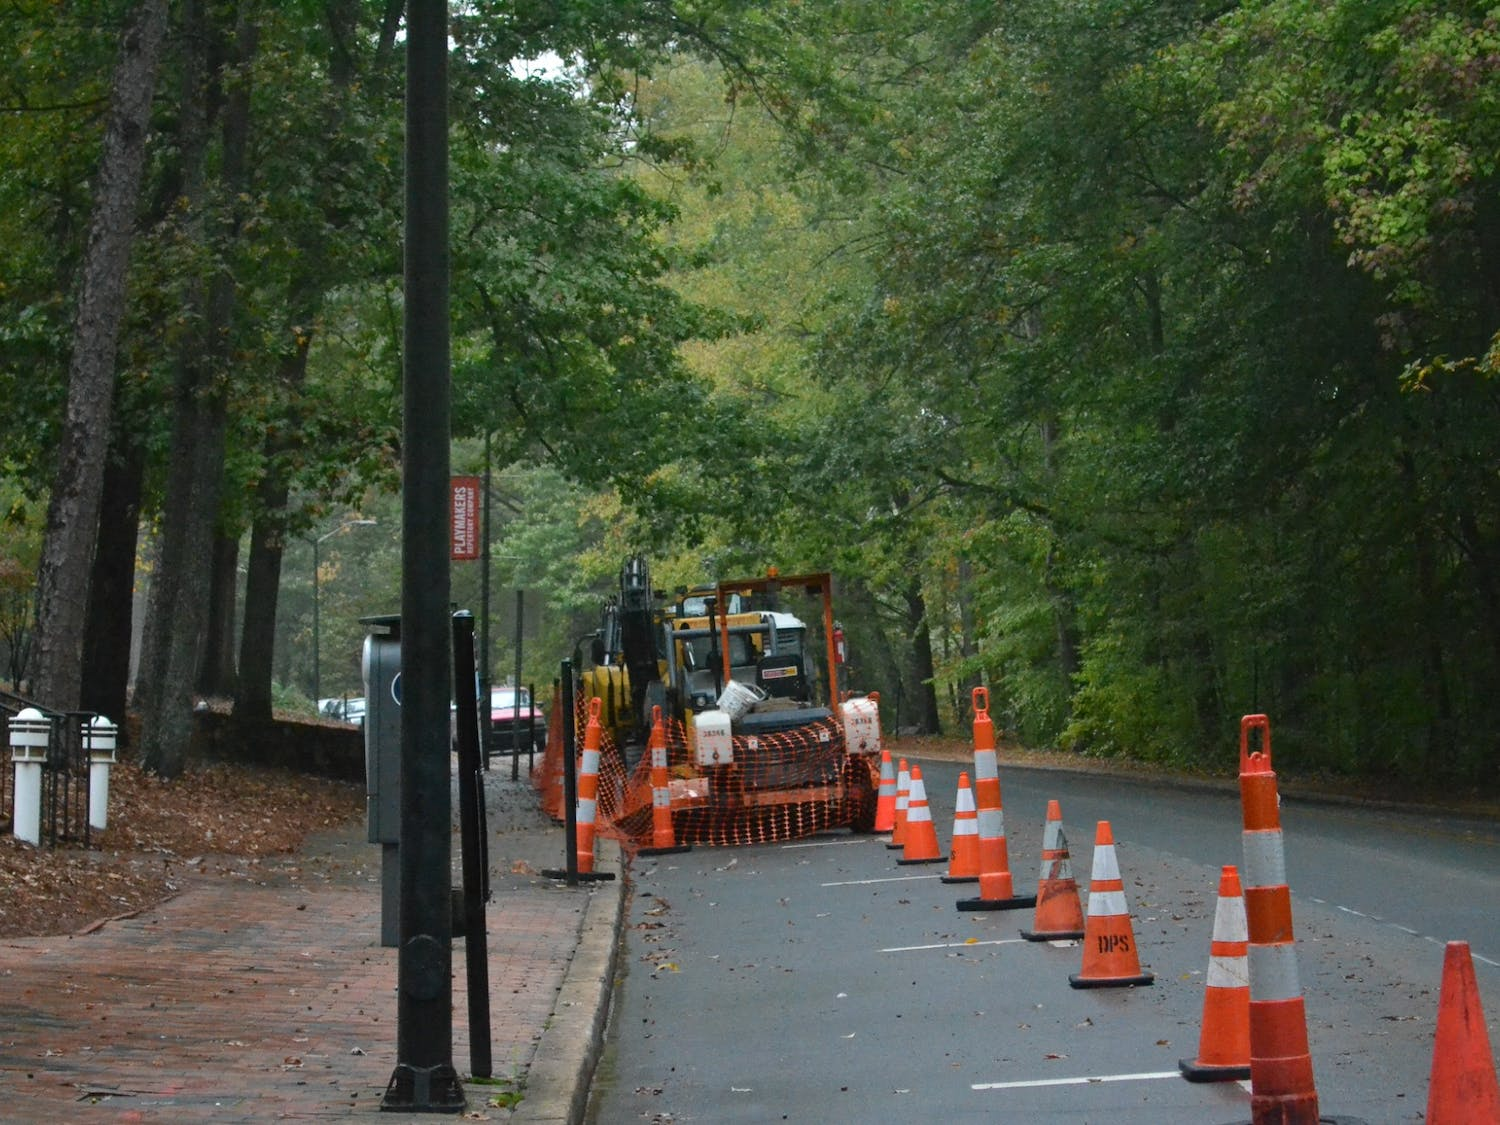 OWASA's replacement of water lines on Country Club Road from Oct. 28, 2019 until January 2020 could reduce the flow of traffic to one lane and impact the availability of street parking.